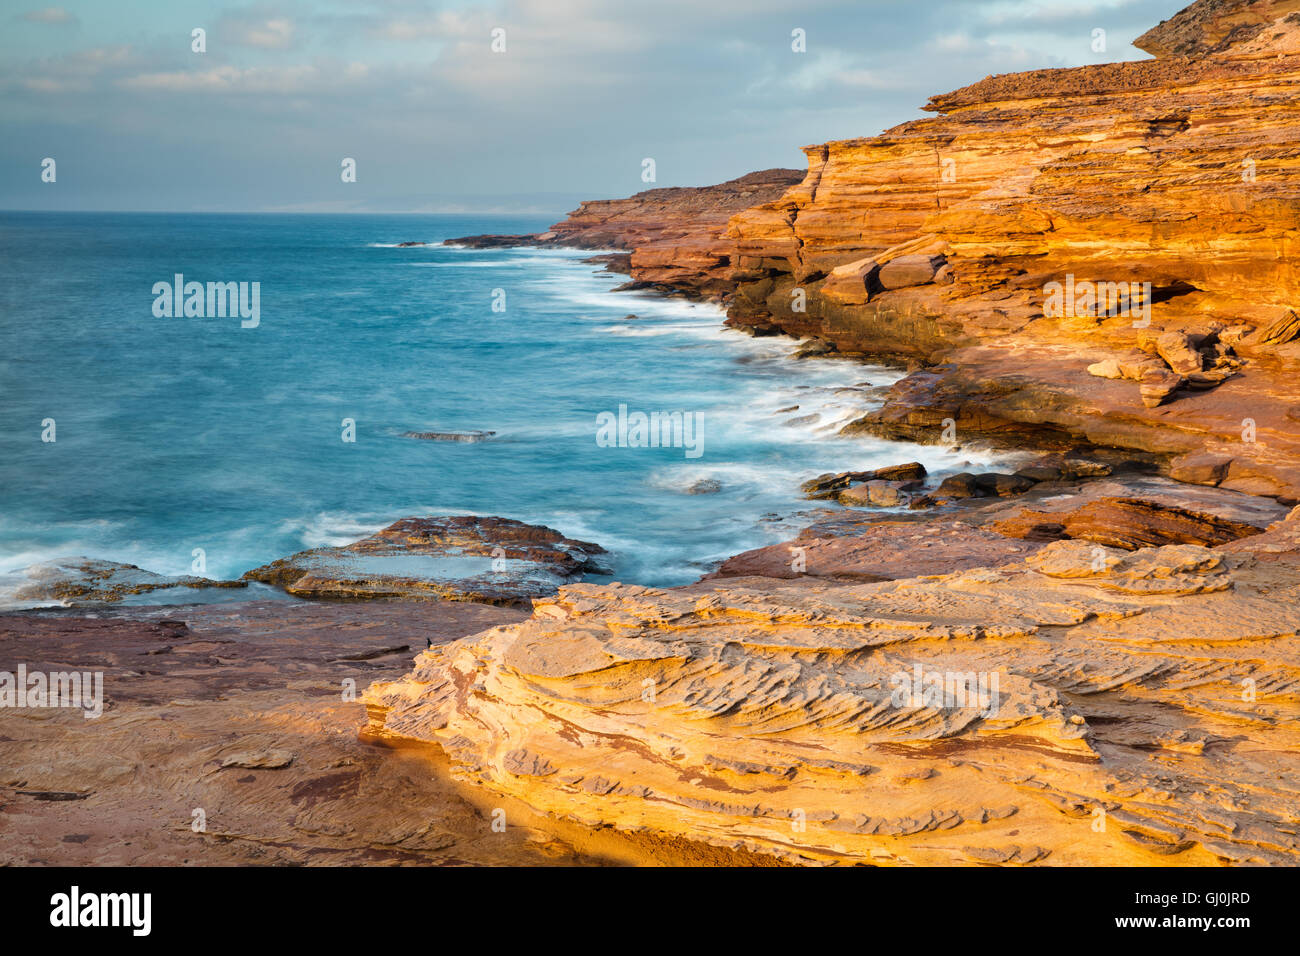 Le falesie costiere di Kalbarri National Park a Pot Alley, Australia occidentale Immagini Stock